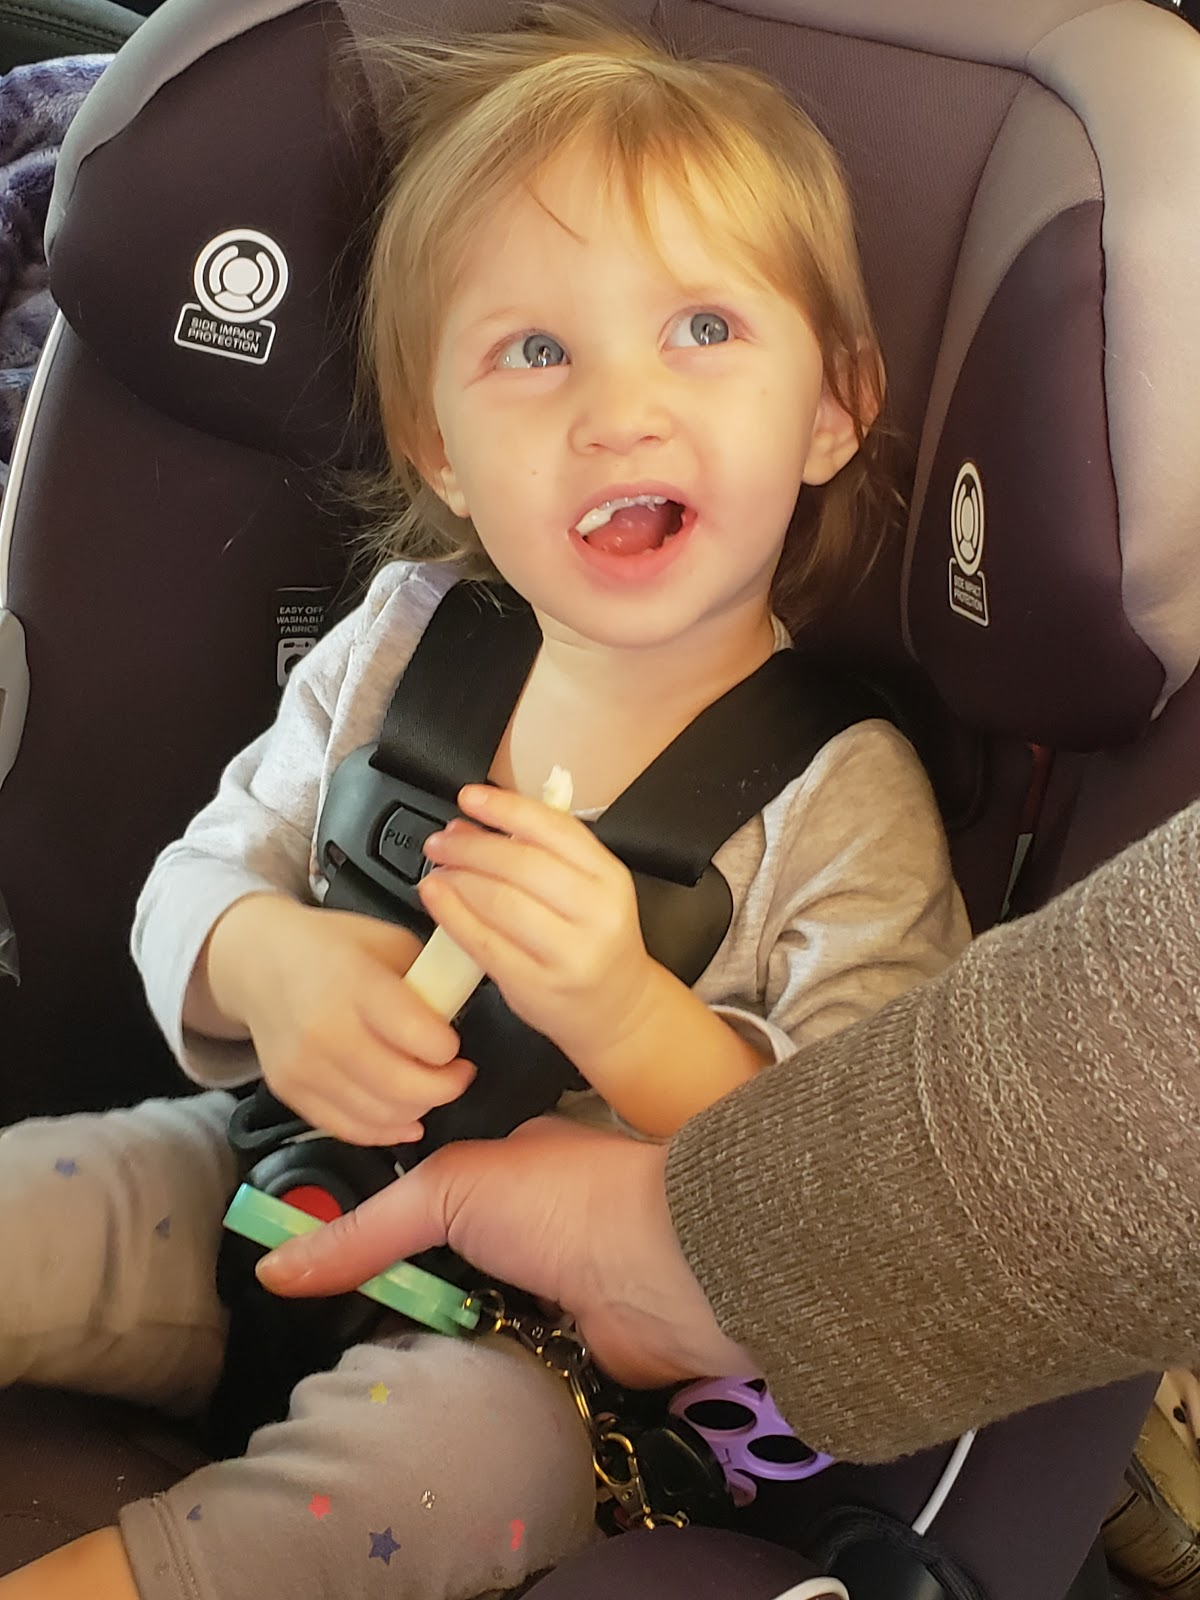 Get A Chance To Review The Car Seat Key This Nifty Little Device Slips Onto My Keyring And Is So Handy When Hands Dont Want Be Well